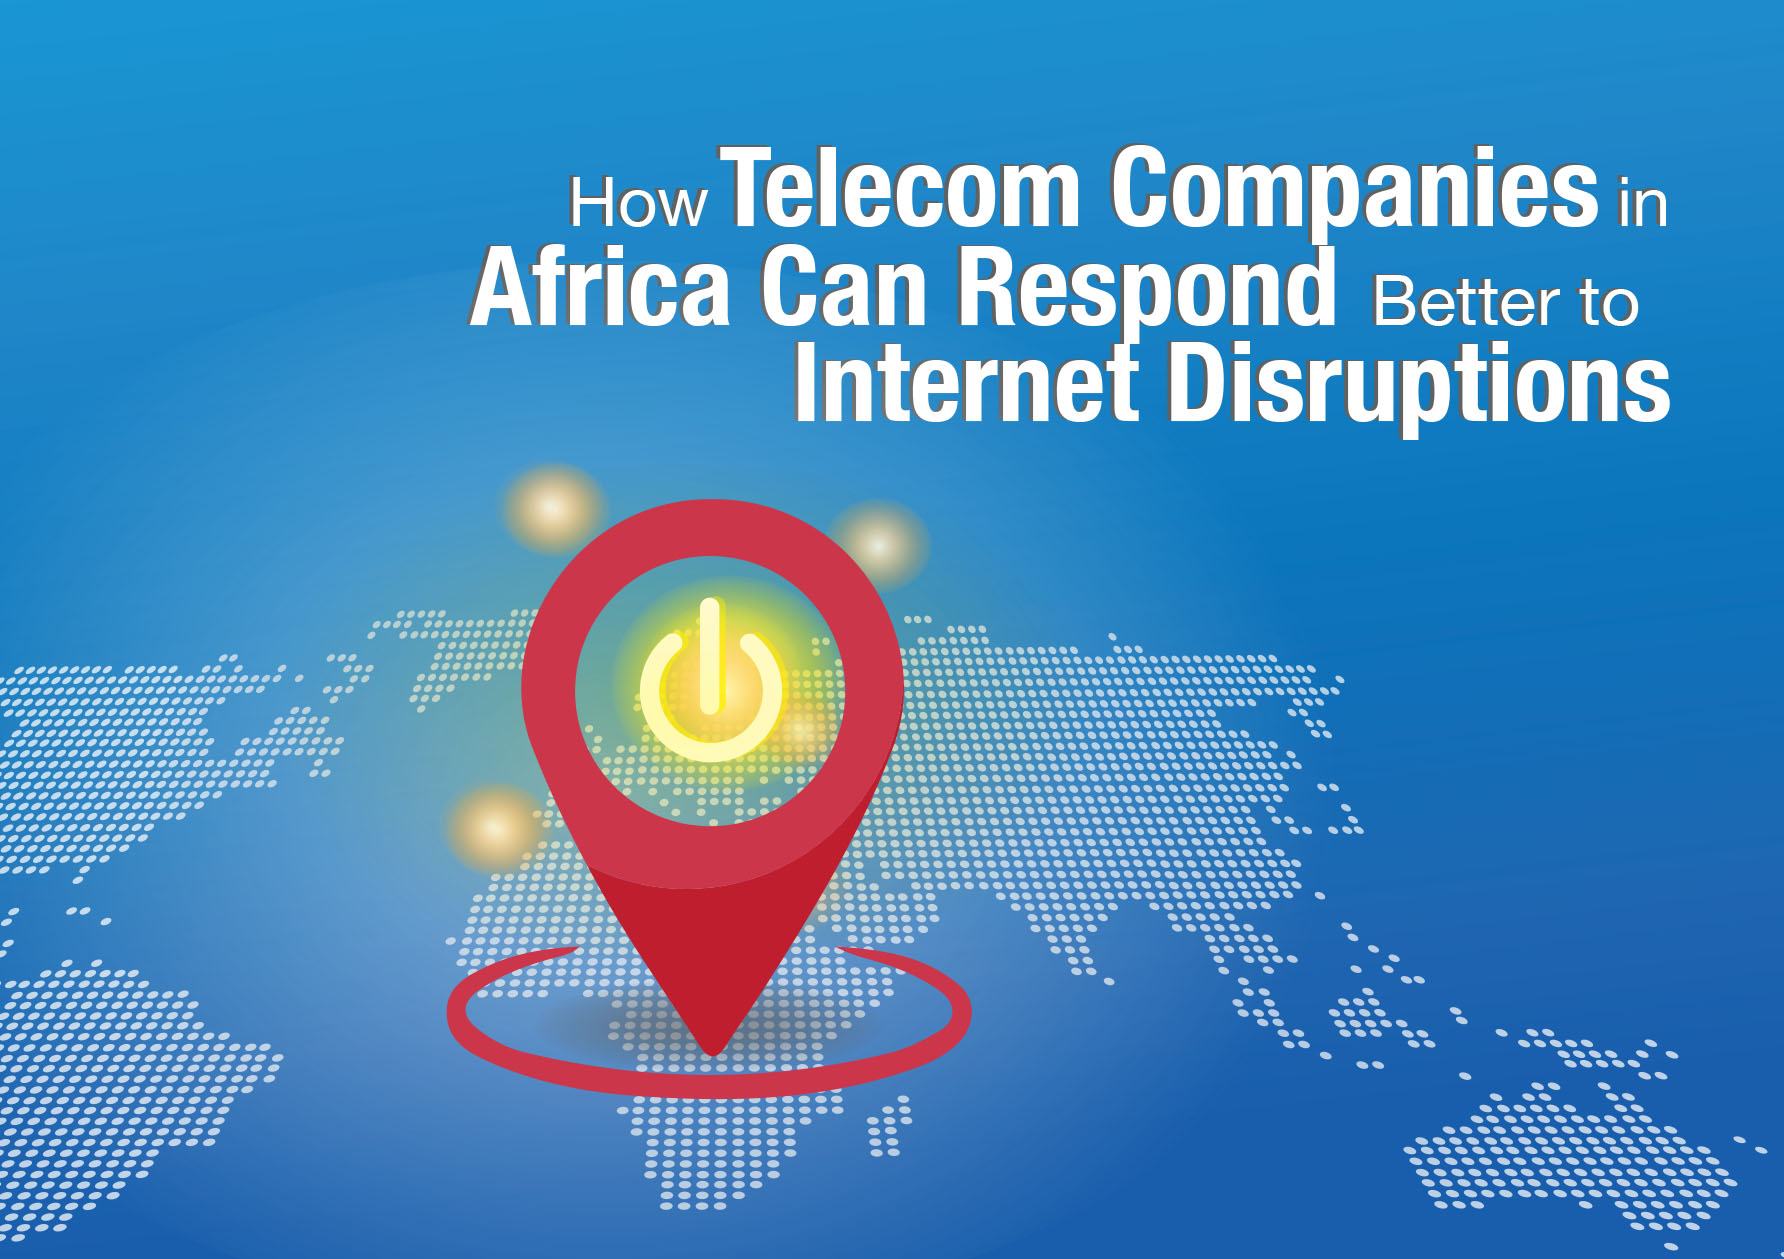 How Telecom Companies in Africa Can Respond Better to Internet Disruptions